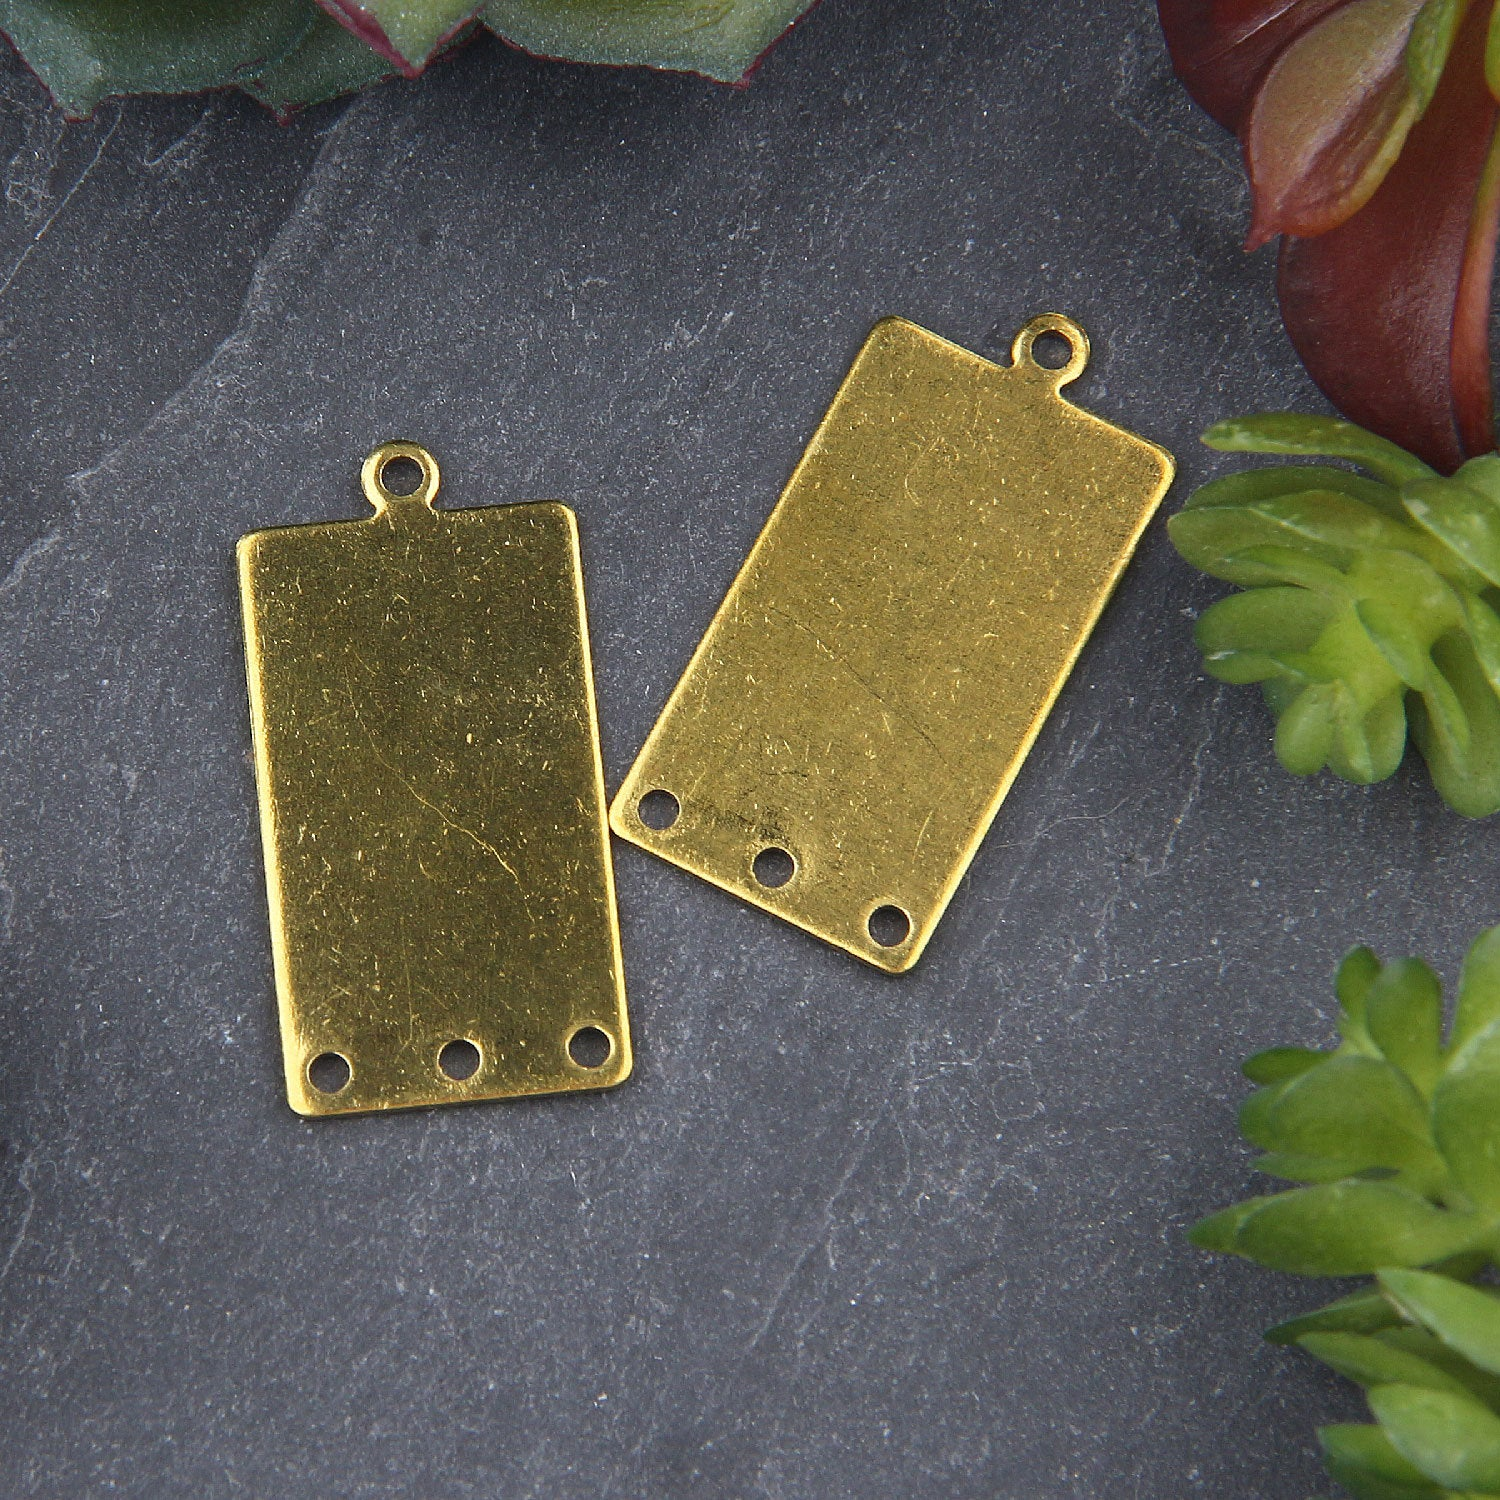 2 Raw Brass  Rectantular Connectors, Raw Brass, Connector Earring Components, Jewelry Supplies, 14x28 mm // RAW-081